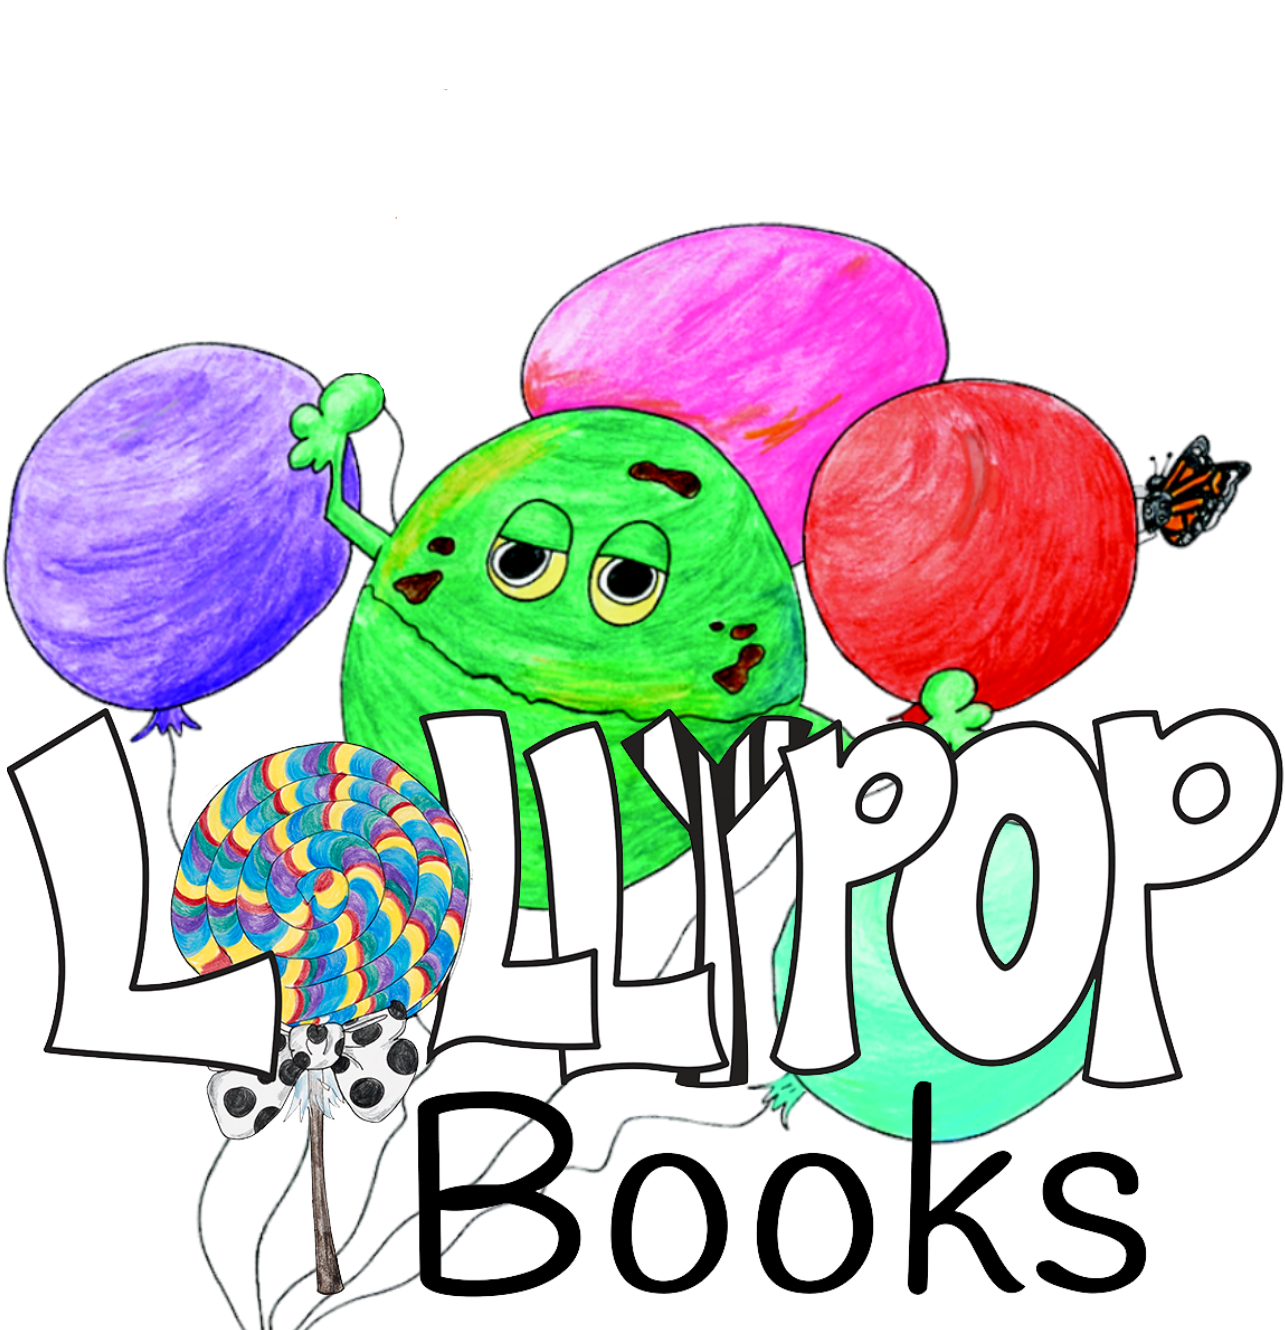 Lollypop Books